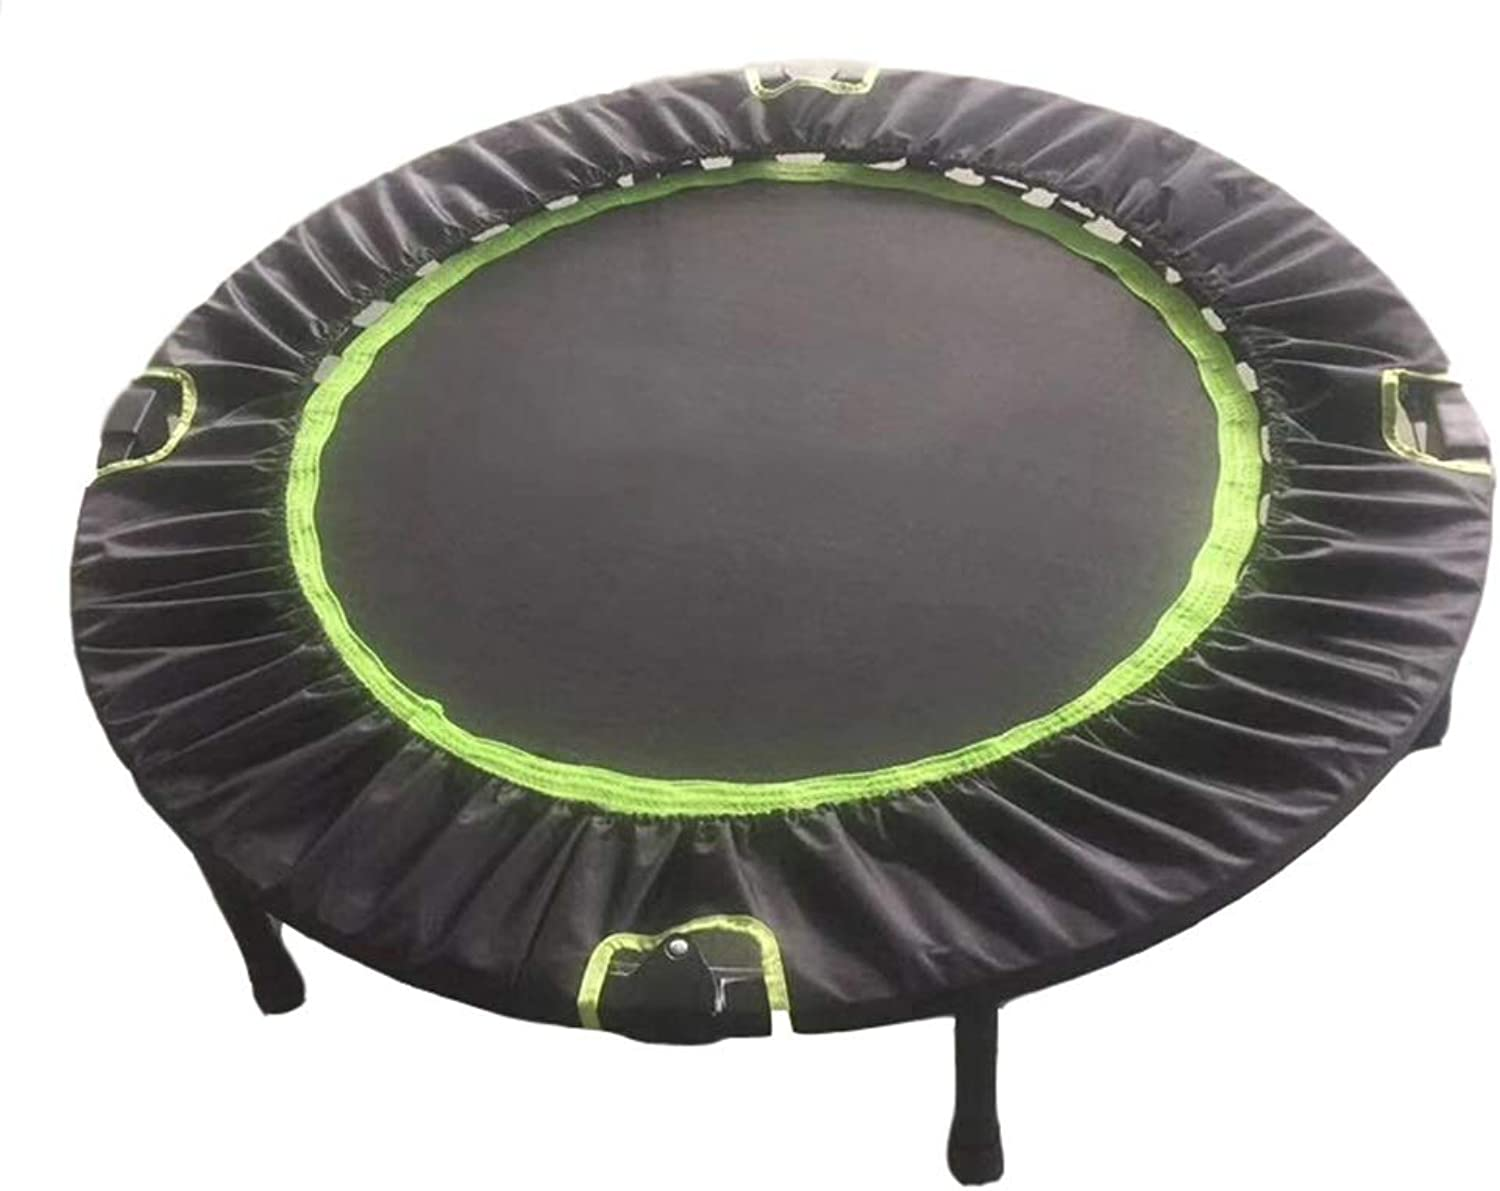 Trampolines 40 Inches Foldable Fitness Equipment, For Indoor Garden Workout Cardio Training